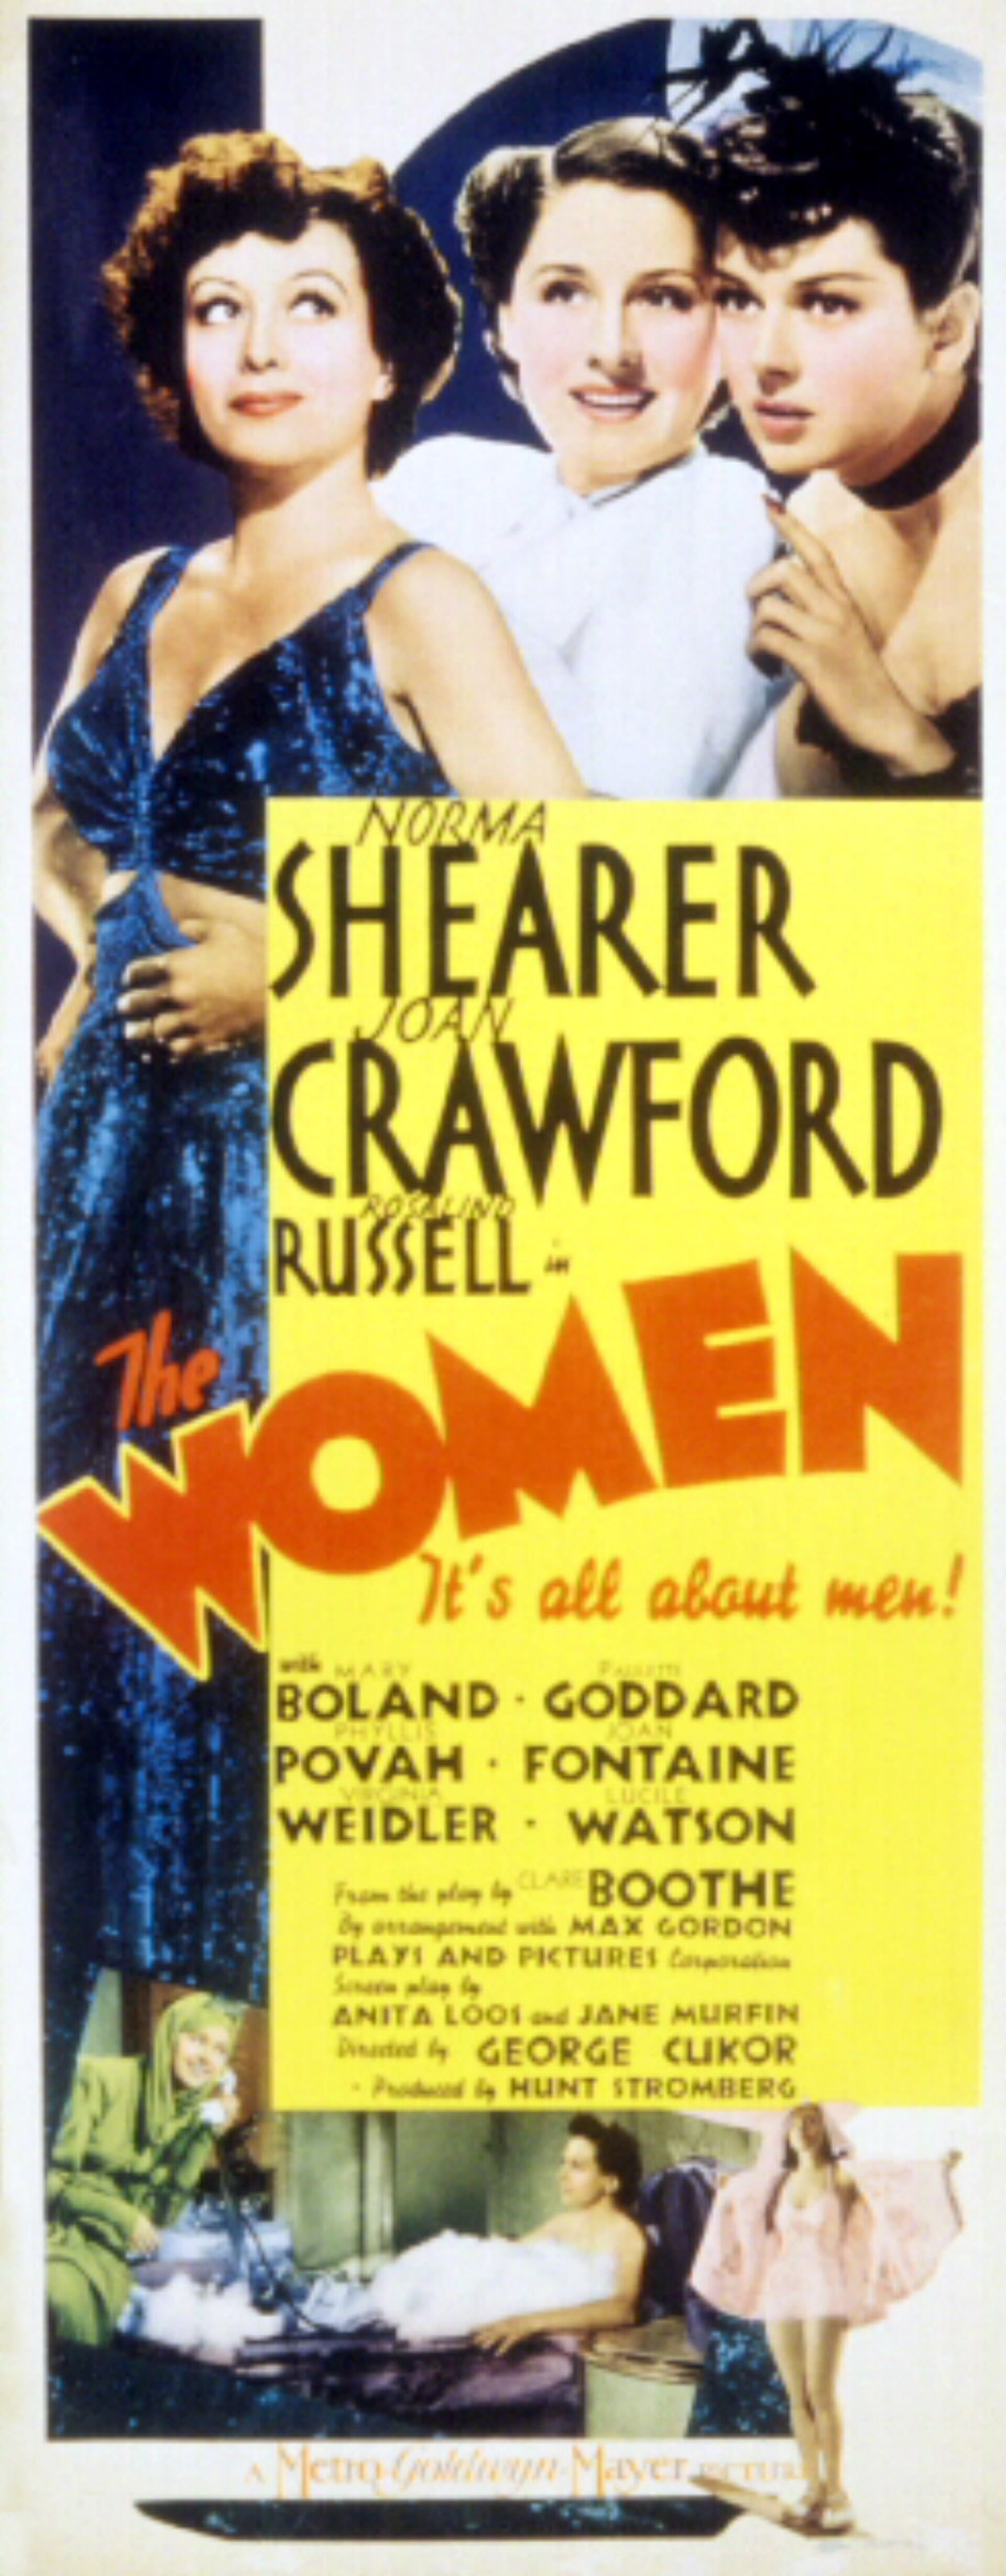 The Women (1939) - Poster 5